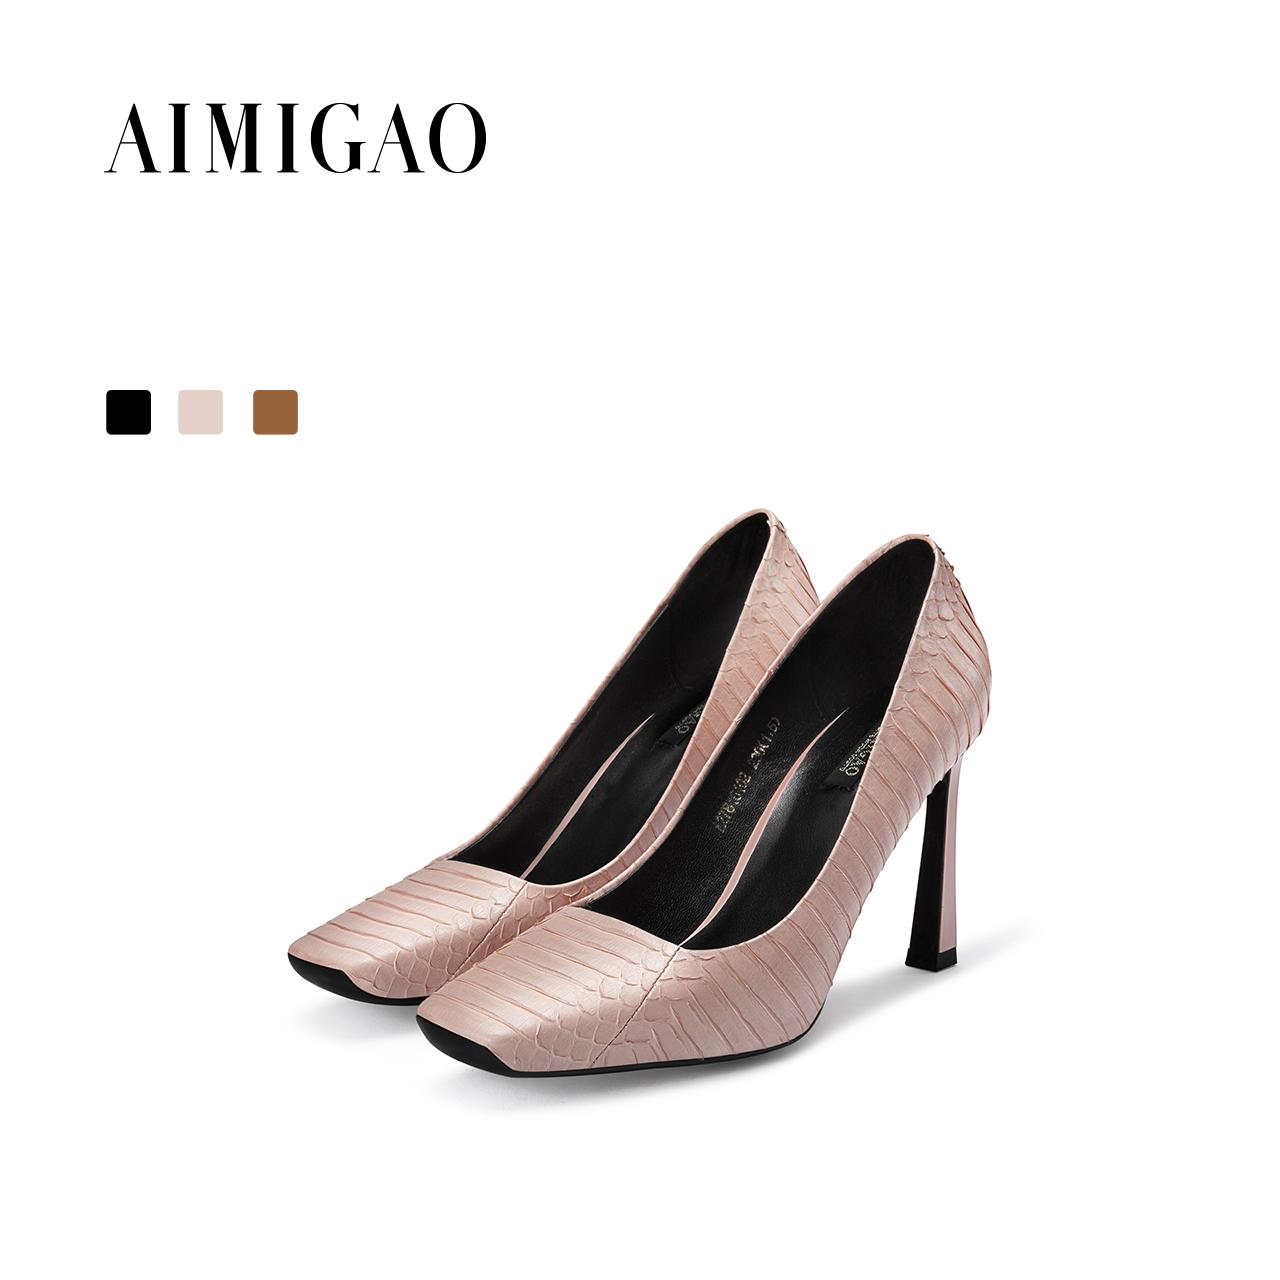 AIMIGAO Snakeskin women sexy high heel pumps shoes pink square toe shallow mouth fashion Genuine Leather women shoes 2017 autumn burgundy gray saphire blue pink women dress party career work shoes flock shallow mouth stiletto thin high heel pumps